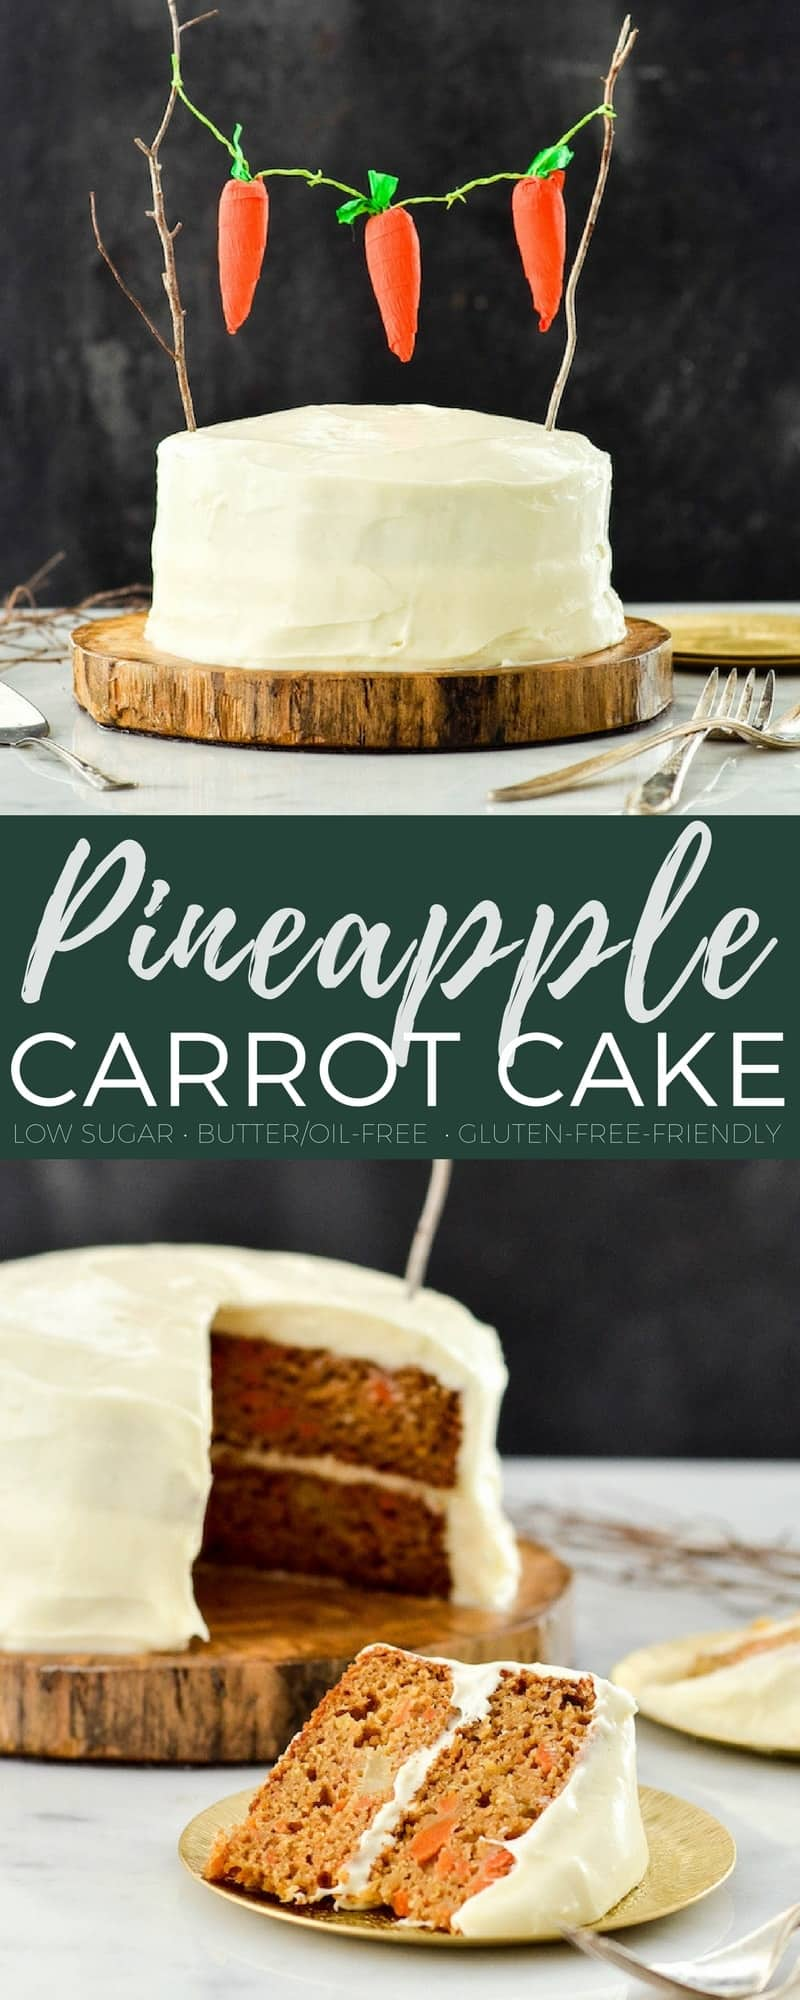 This Healthy Carrot Pineapple Cake Is A Lightened Up Version Of Everyone S Favorite Spring Dessert